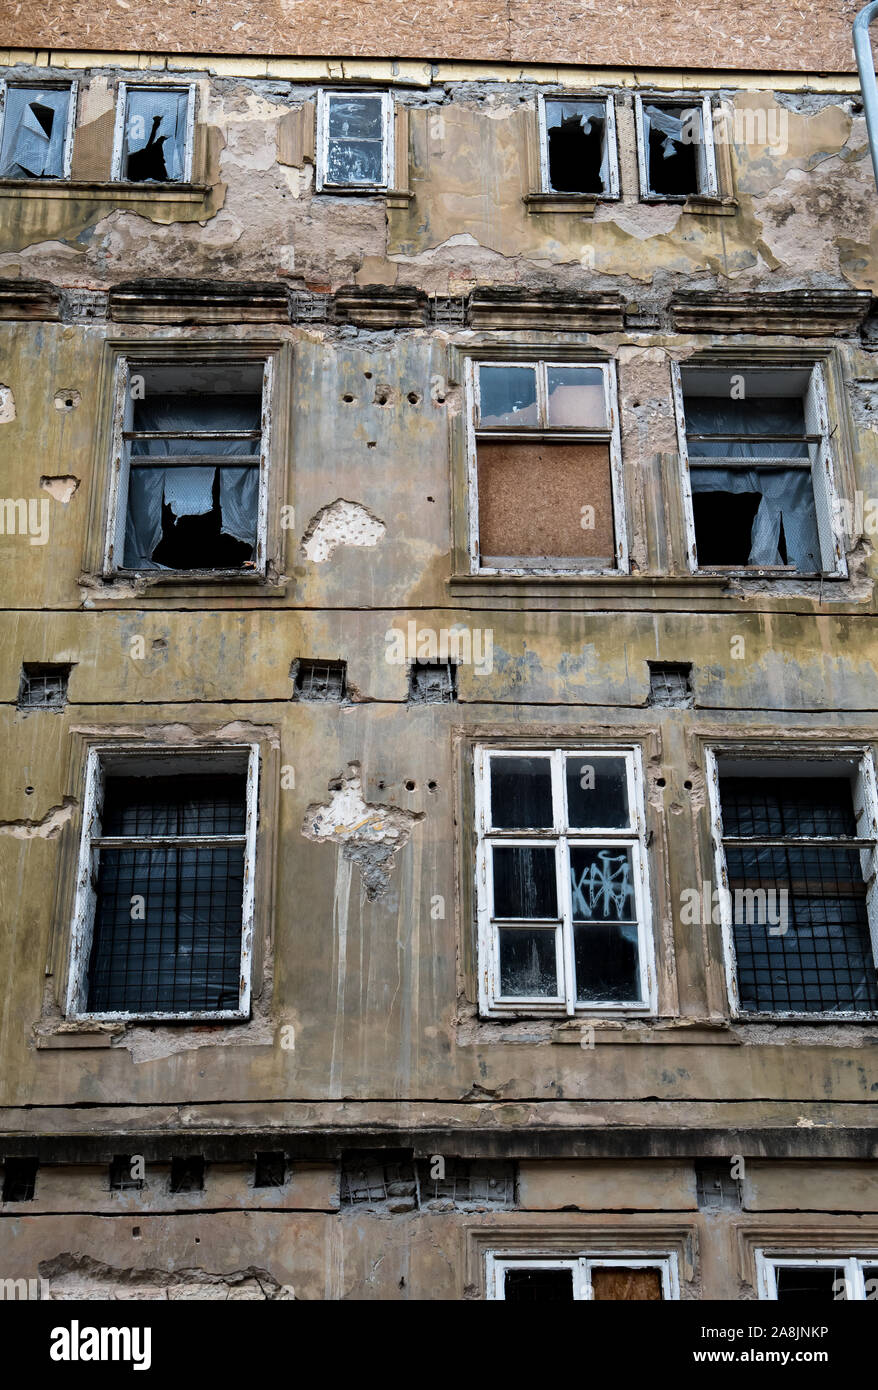 Old Desolate Apartment House With Damaged Facade And Bursted Windows Stock Photo